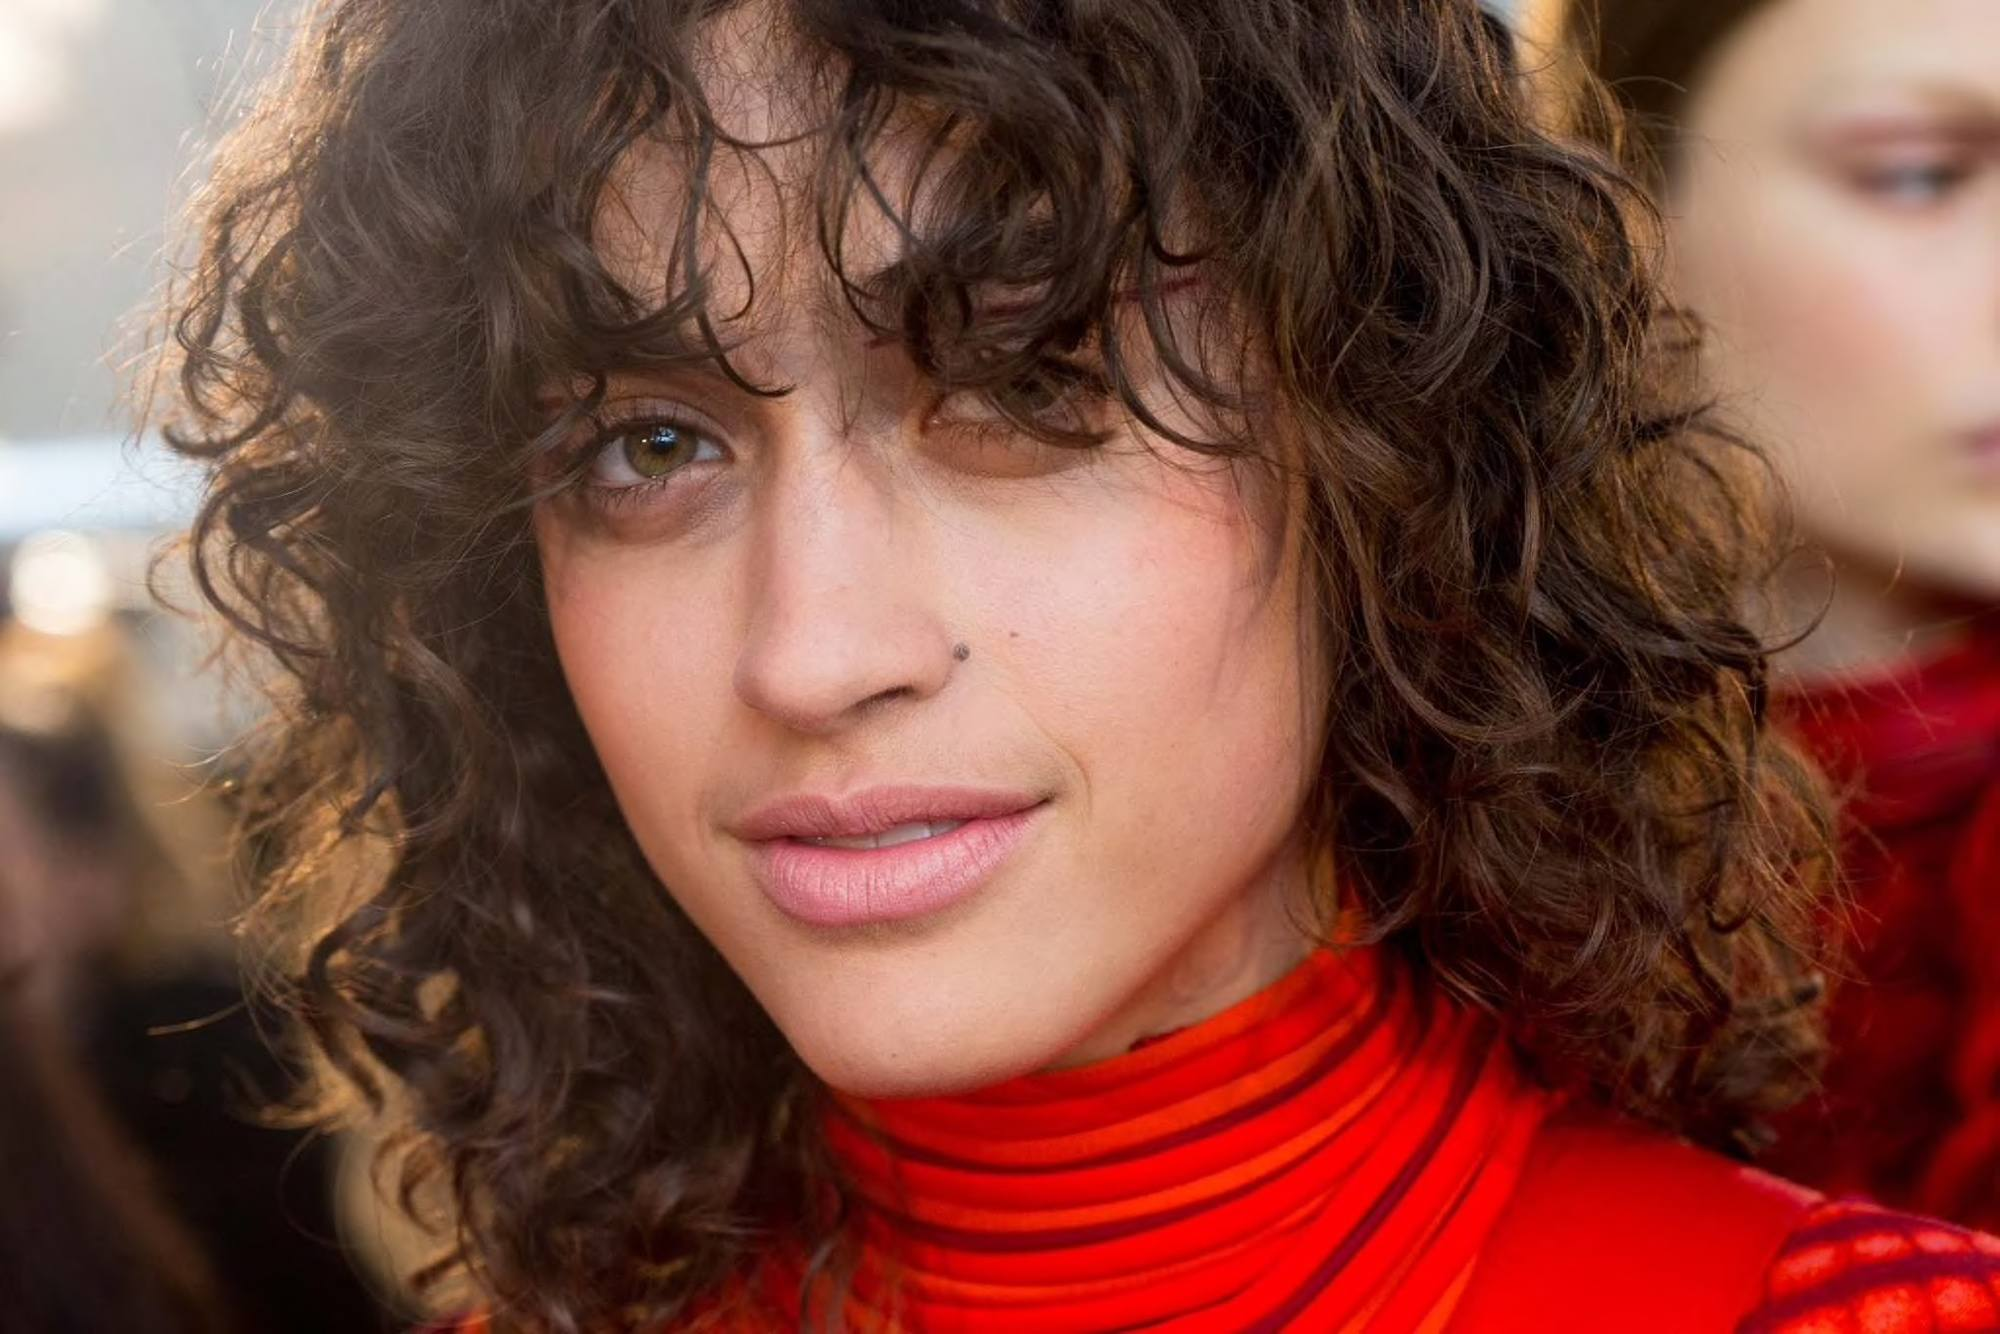 Awesome Curly Hair with Bangs Hairstyle ideas